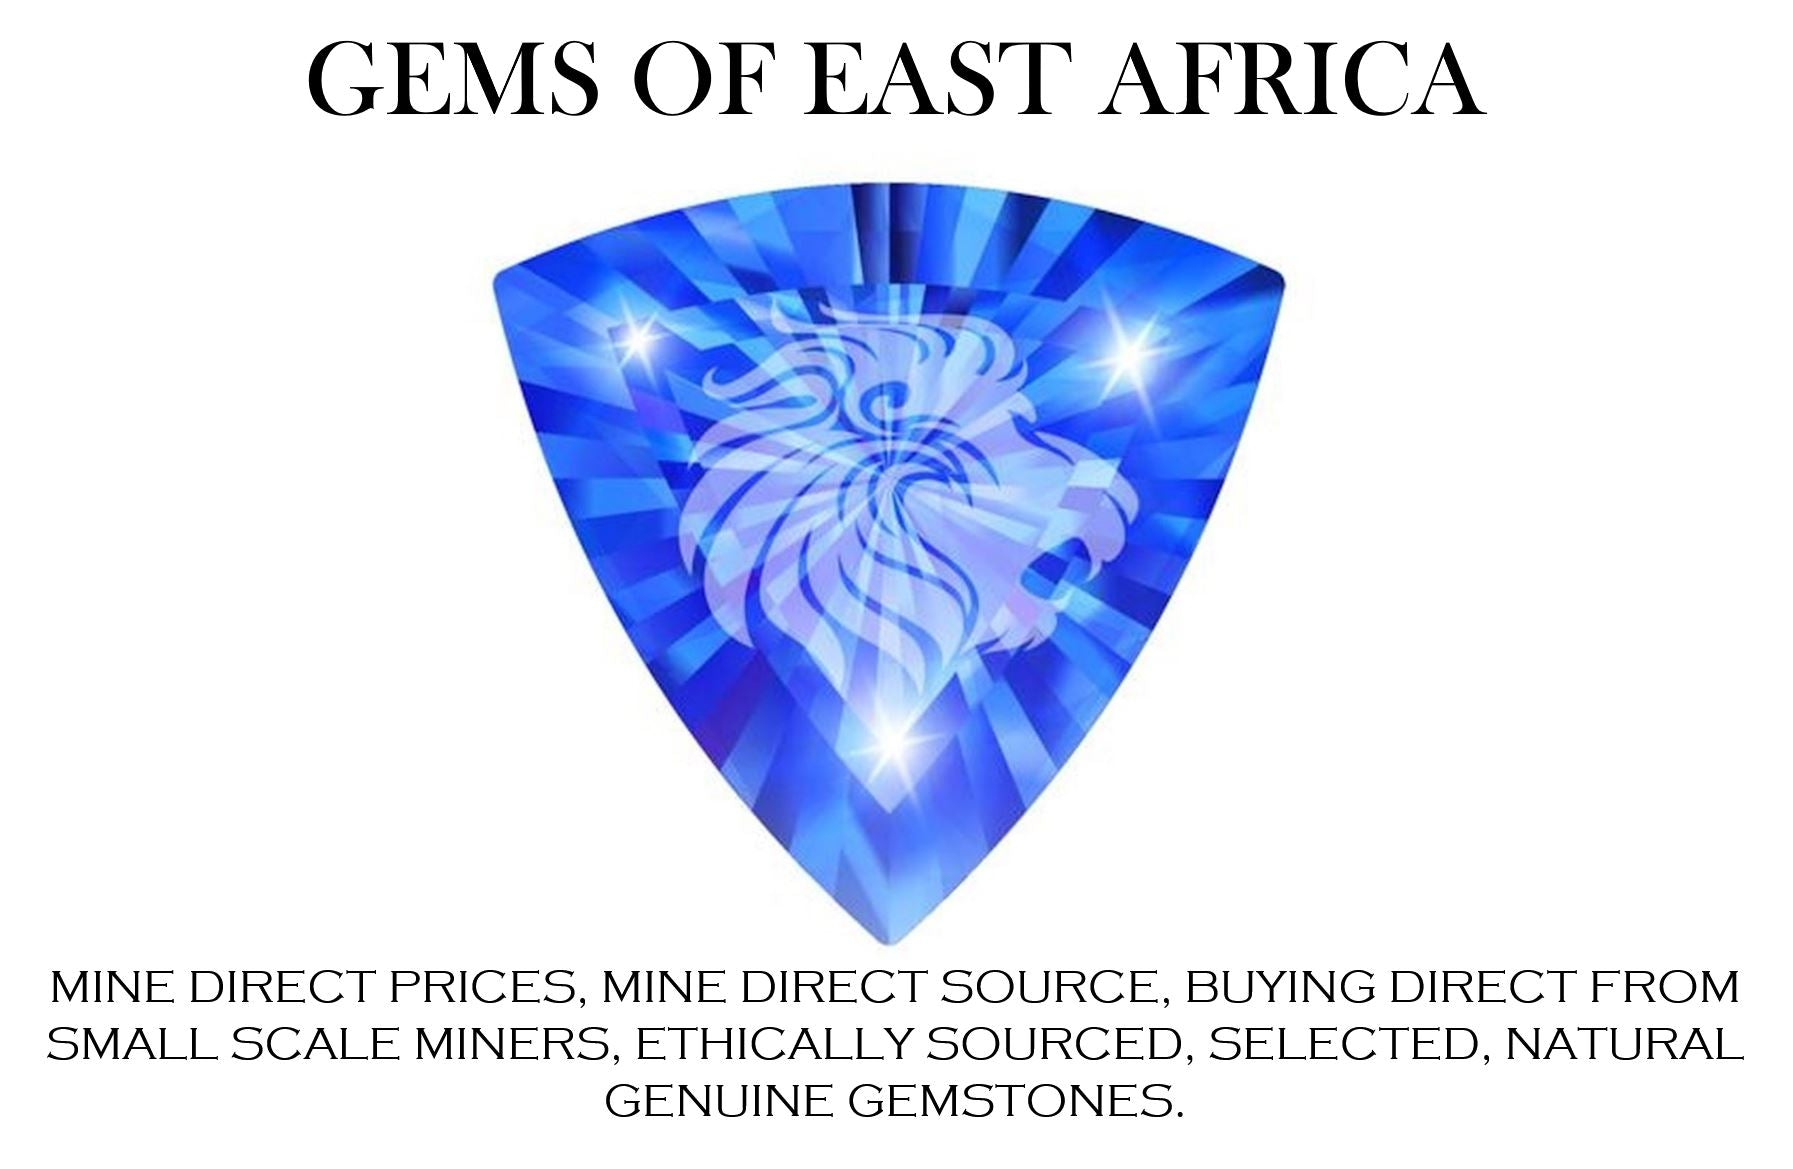 SELECTED NATURAL GEMSTONES AT MINE DIRECT PRICES, ETHICAL GEMSTONES, FINE GEMSTONES, MINE DIRECT SUPPLIER, GENUINE GEMSTONES, GEMSTONE WHOLESALE, GEMSTONES FROM SOURCE TANZANIA, KENYA, EAST AFRICA, GEMS OF EAST AFRICA, ETHICAL GEMSTONES, GEM GEMS GEMSTONE